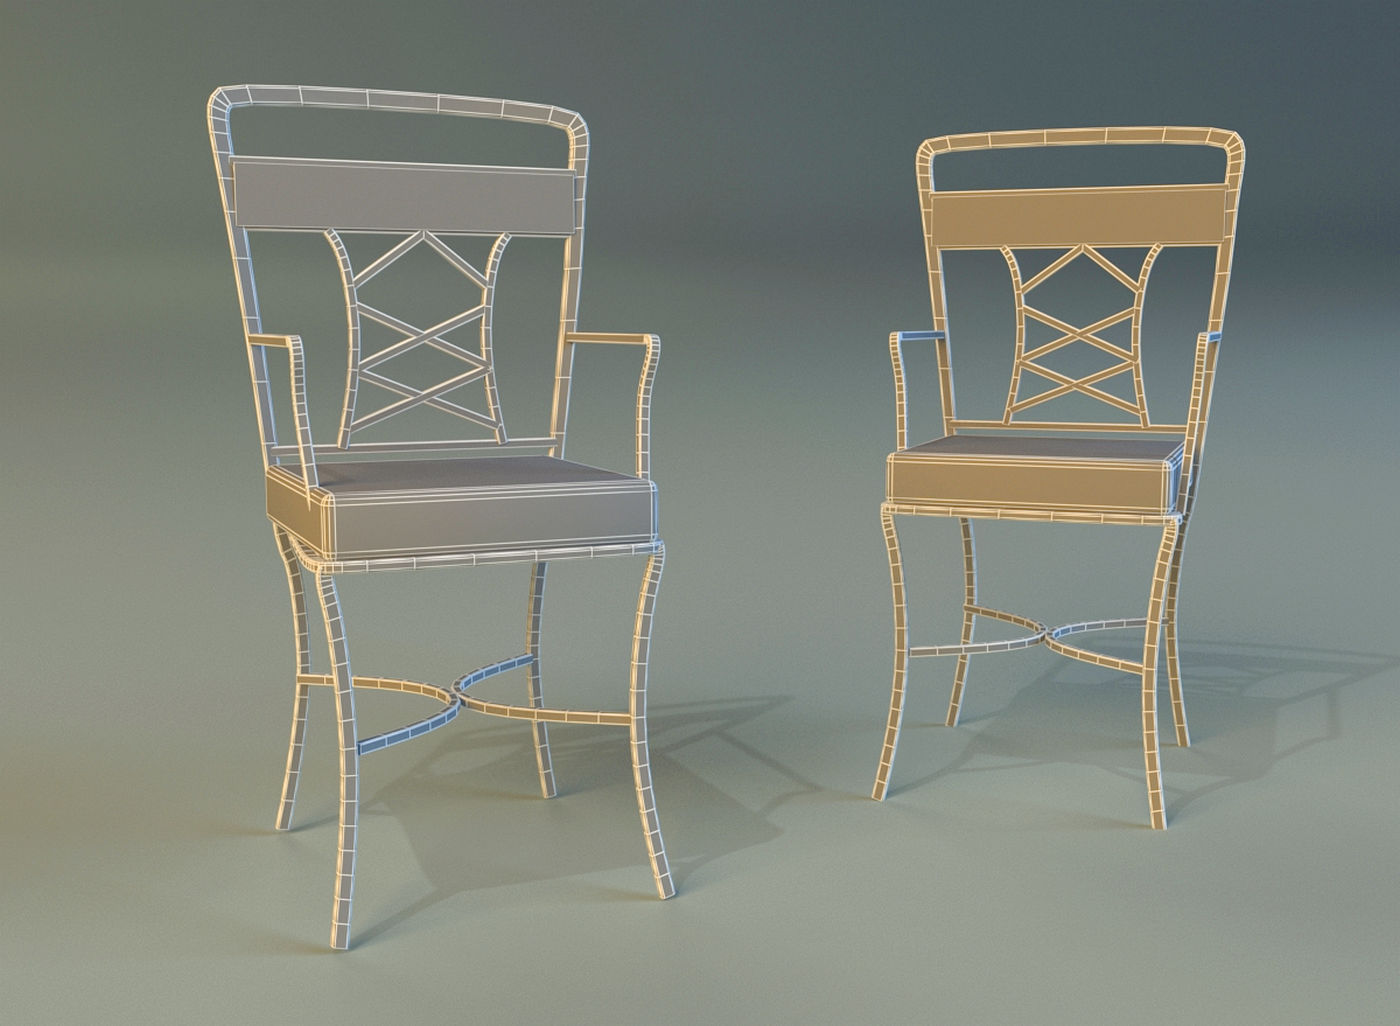 metal kitchen chair plus size beach chairs 3d model max obj 3ds fbx cgtrader